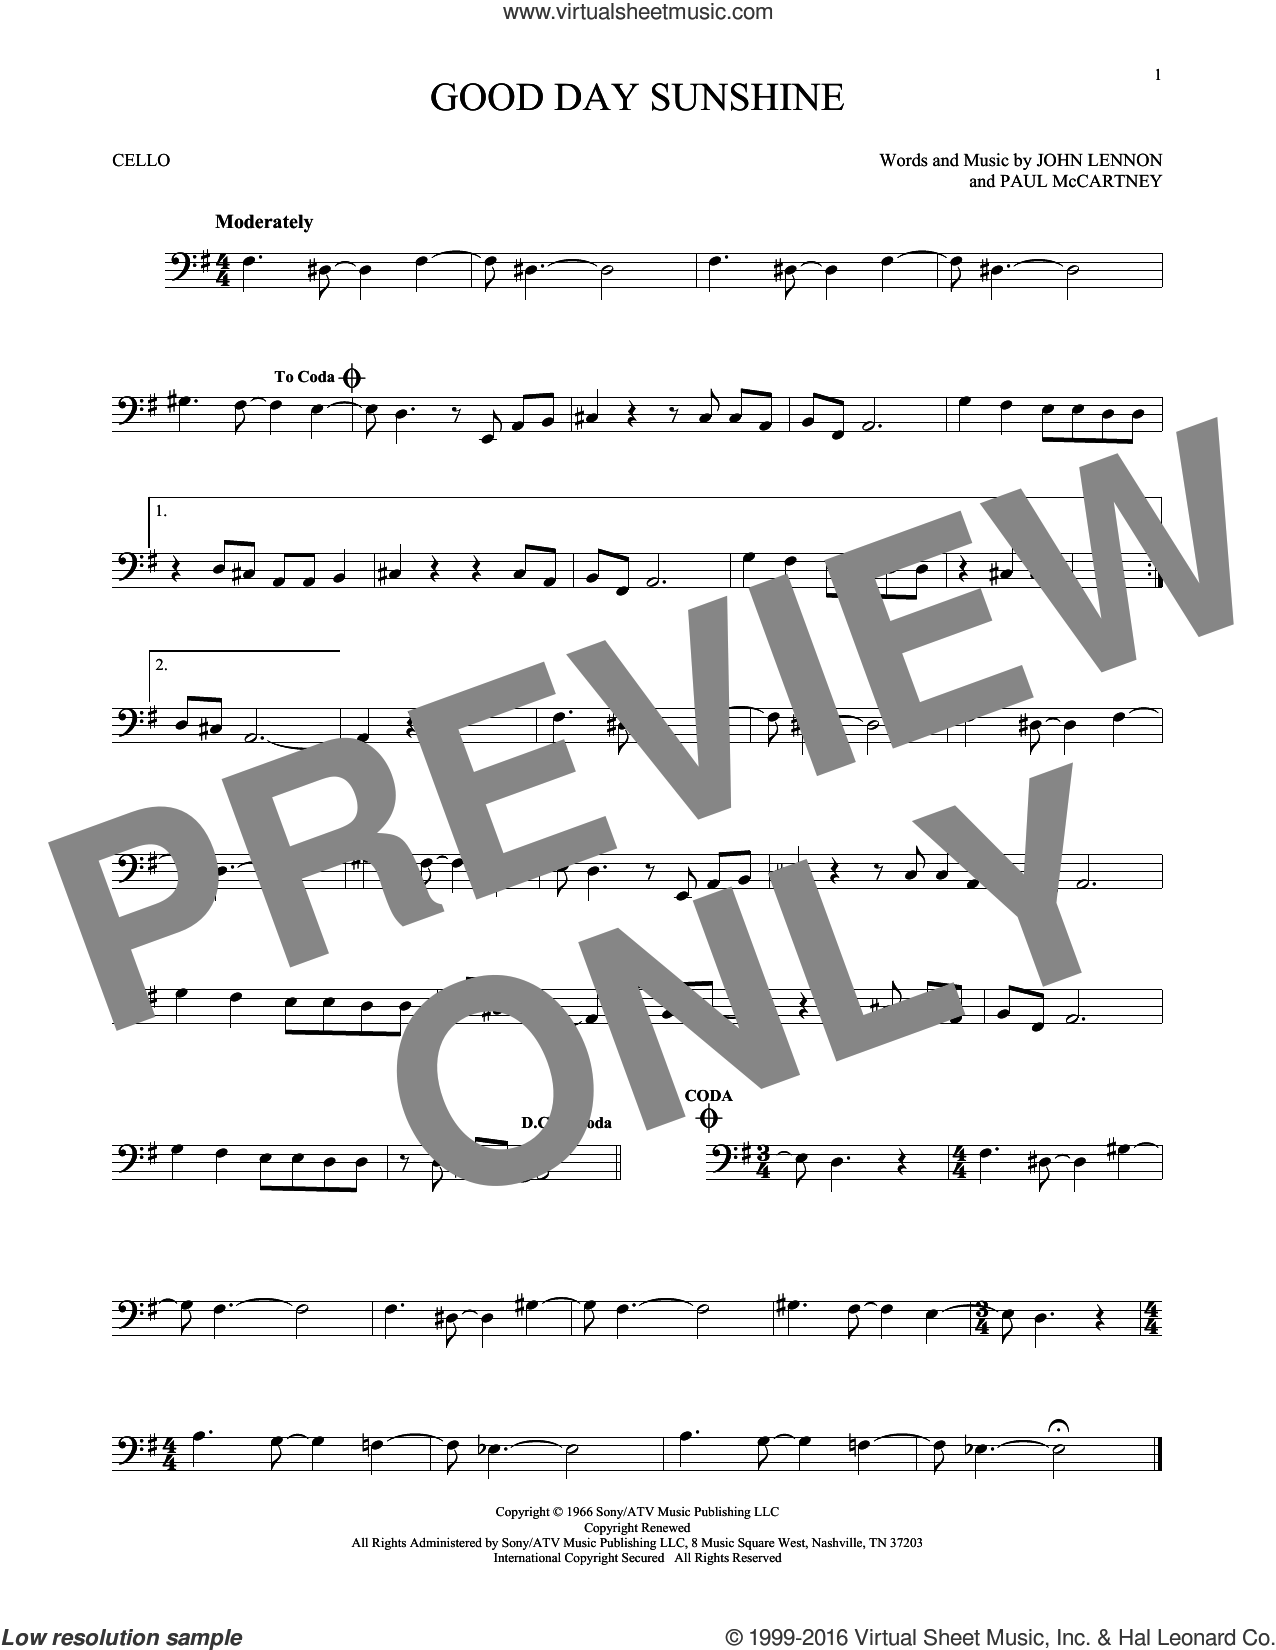 Good Day Sunshine sheet music for cello solo by The Beatles, John Lennon and Paul McCartney, intermediate skill level